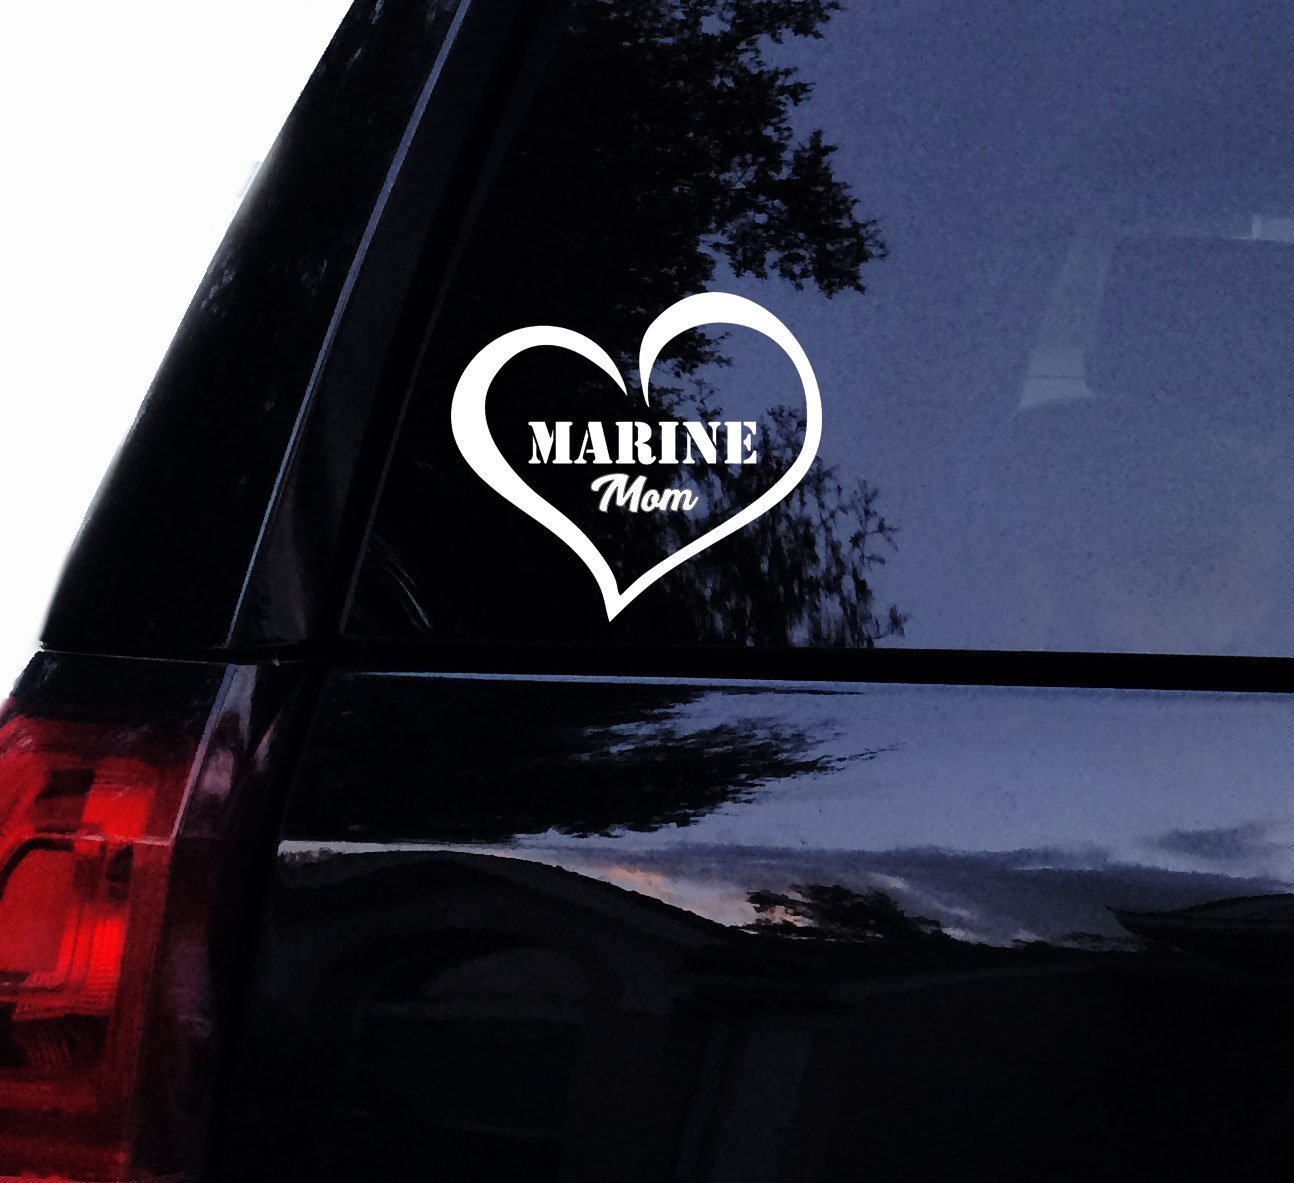 f91b45bb6b7 Get Quotations · MARINE Mom Love Decal Sticker - Military Mom Heart Marines  Vinyl Car Decal, Laptop Decal